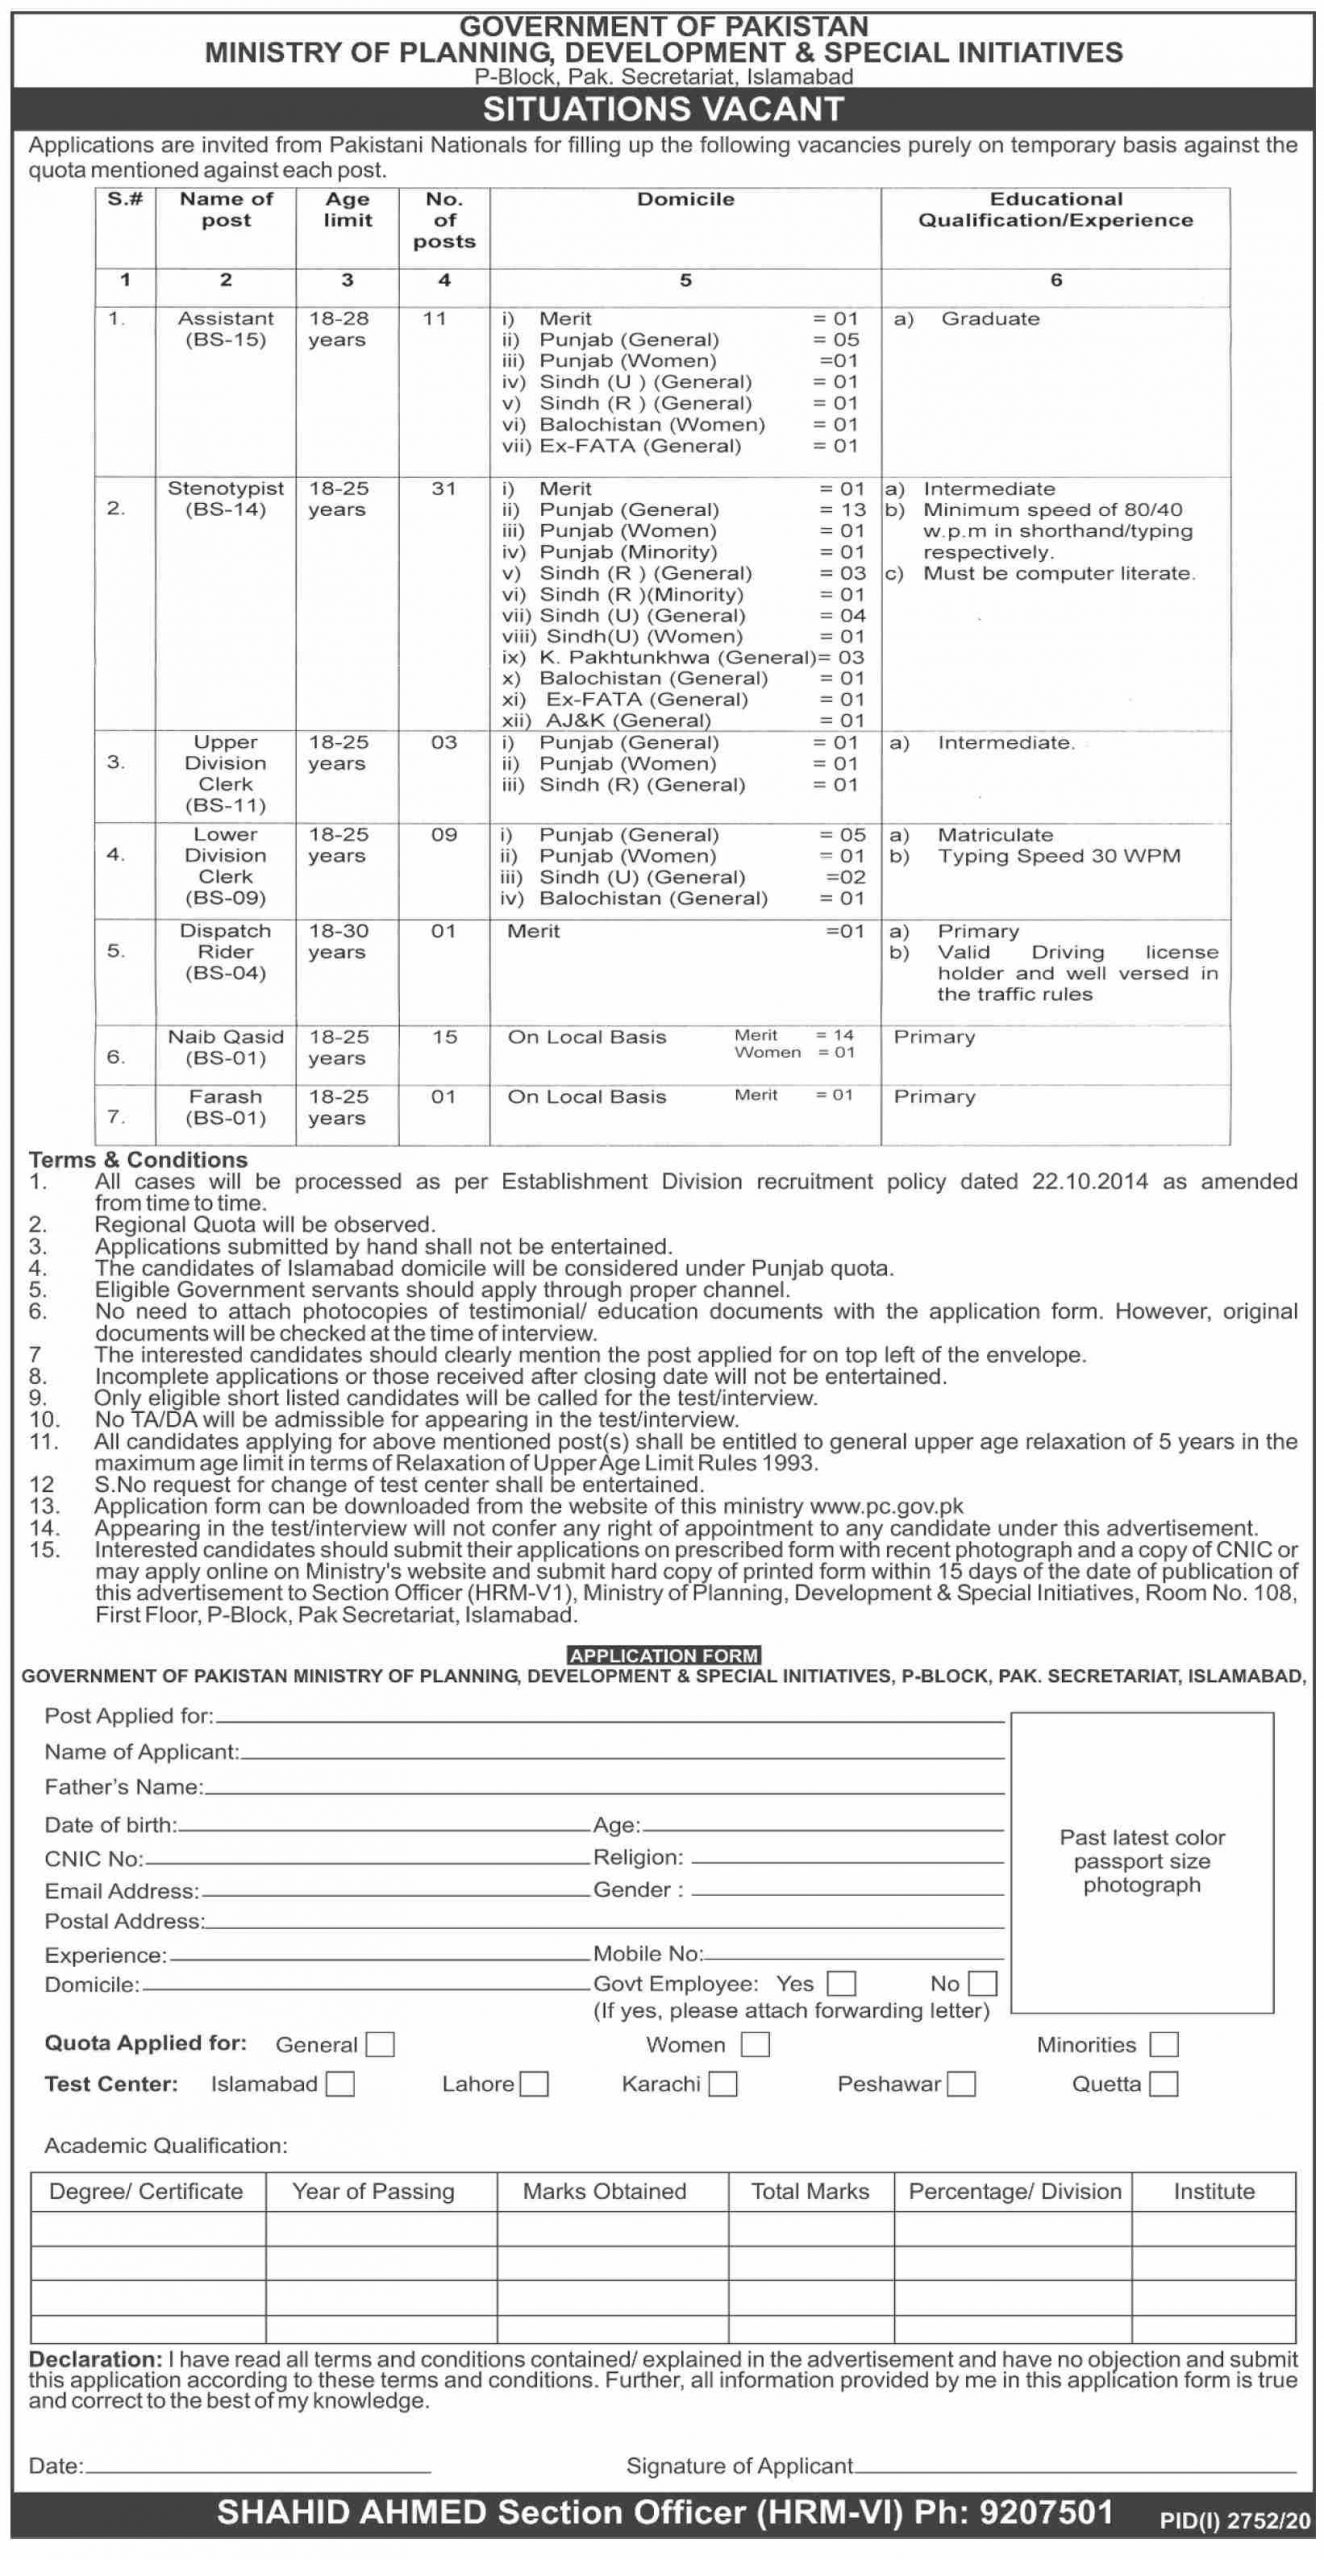 Government of Pakistan Ministry of Planning Development & Special Initiatives Jobs November 2020